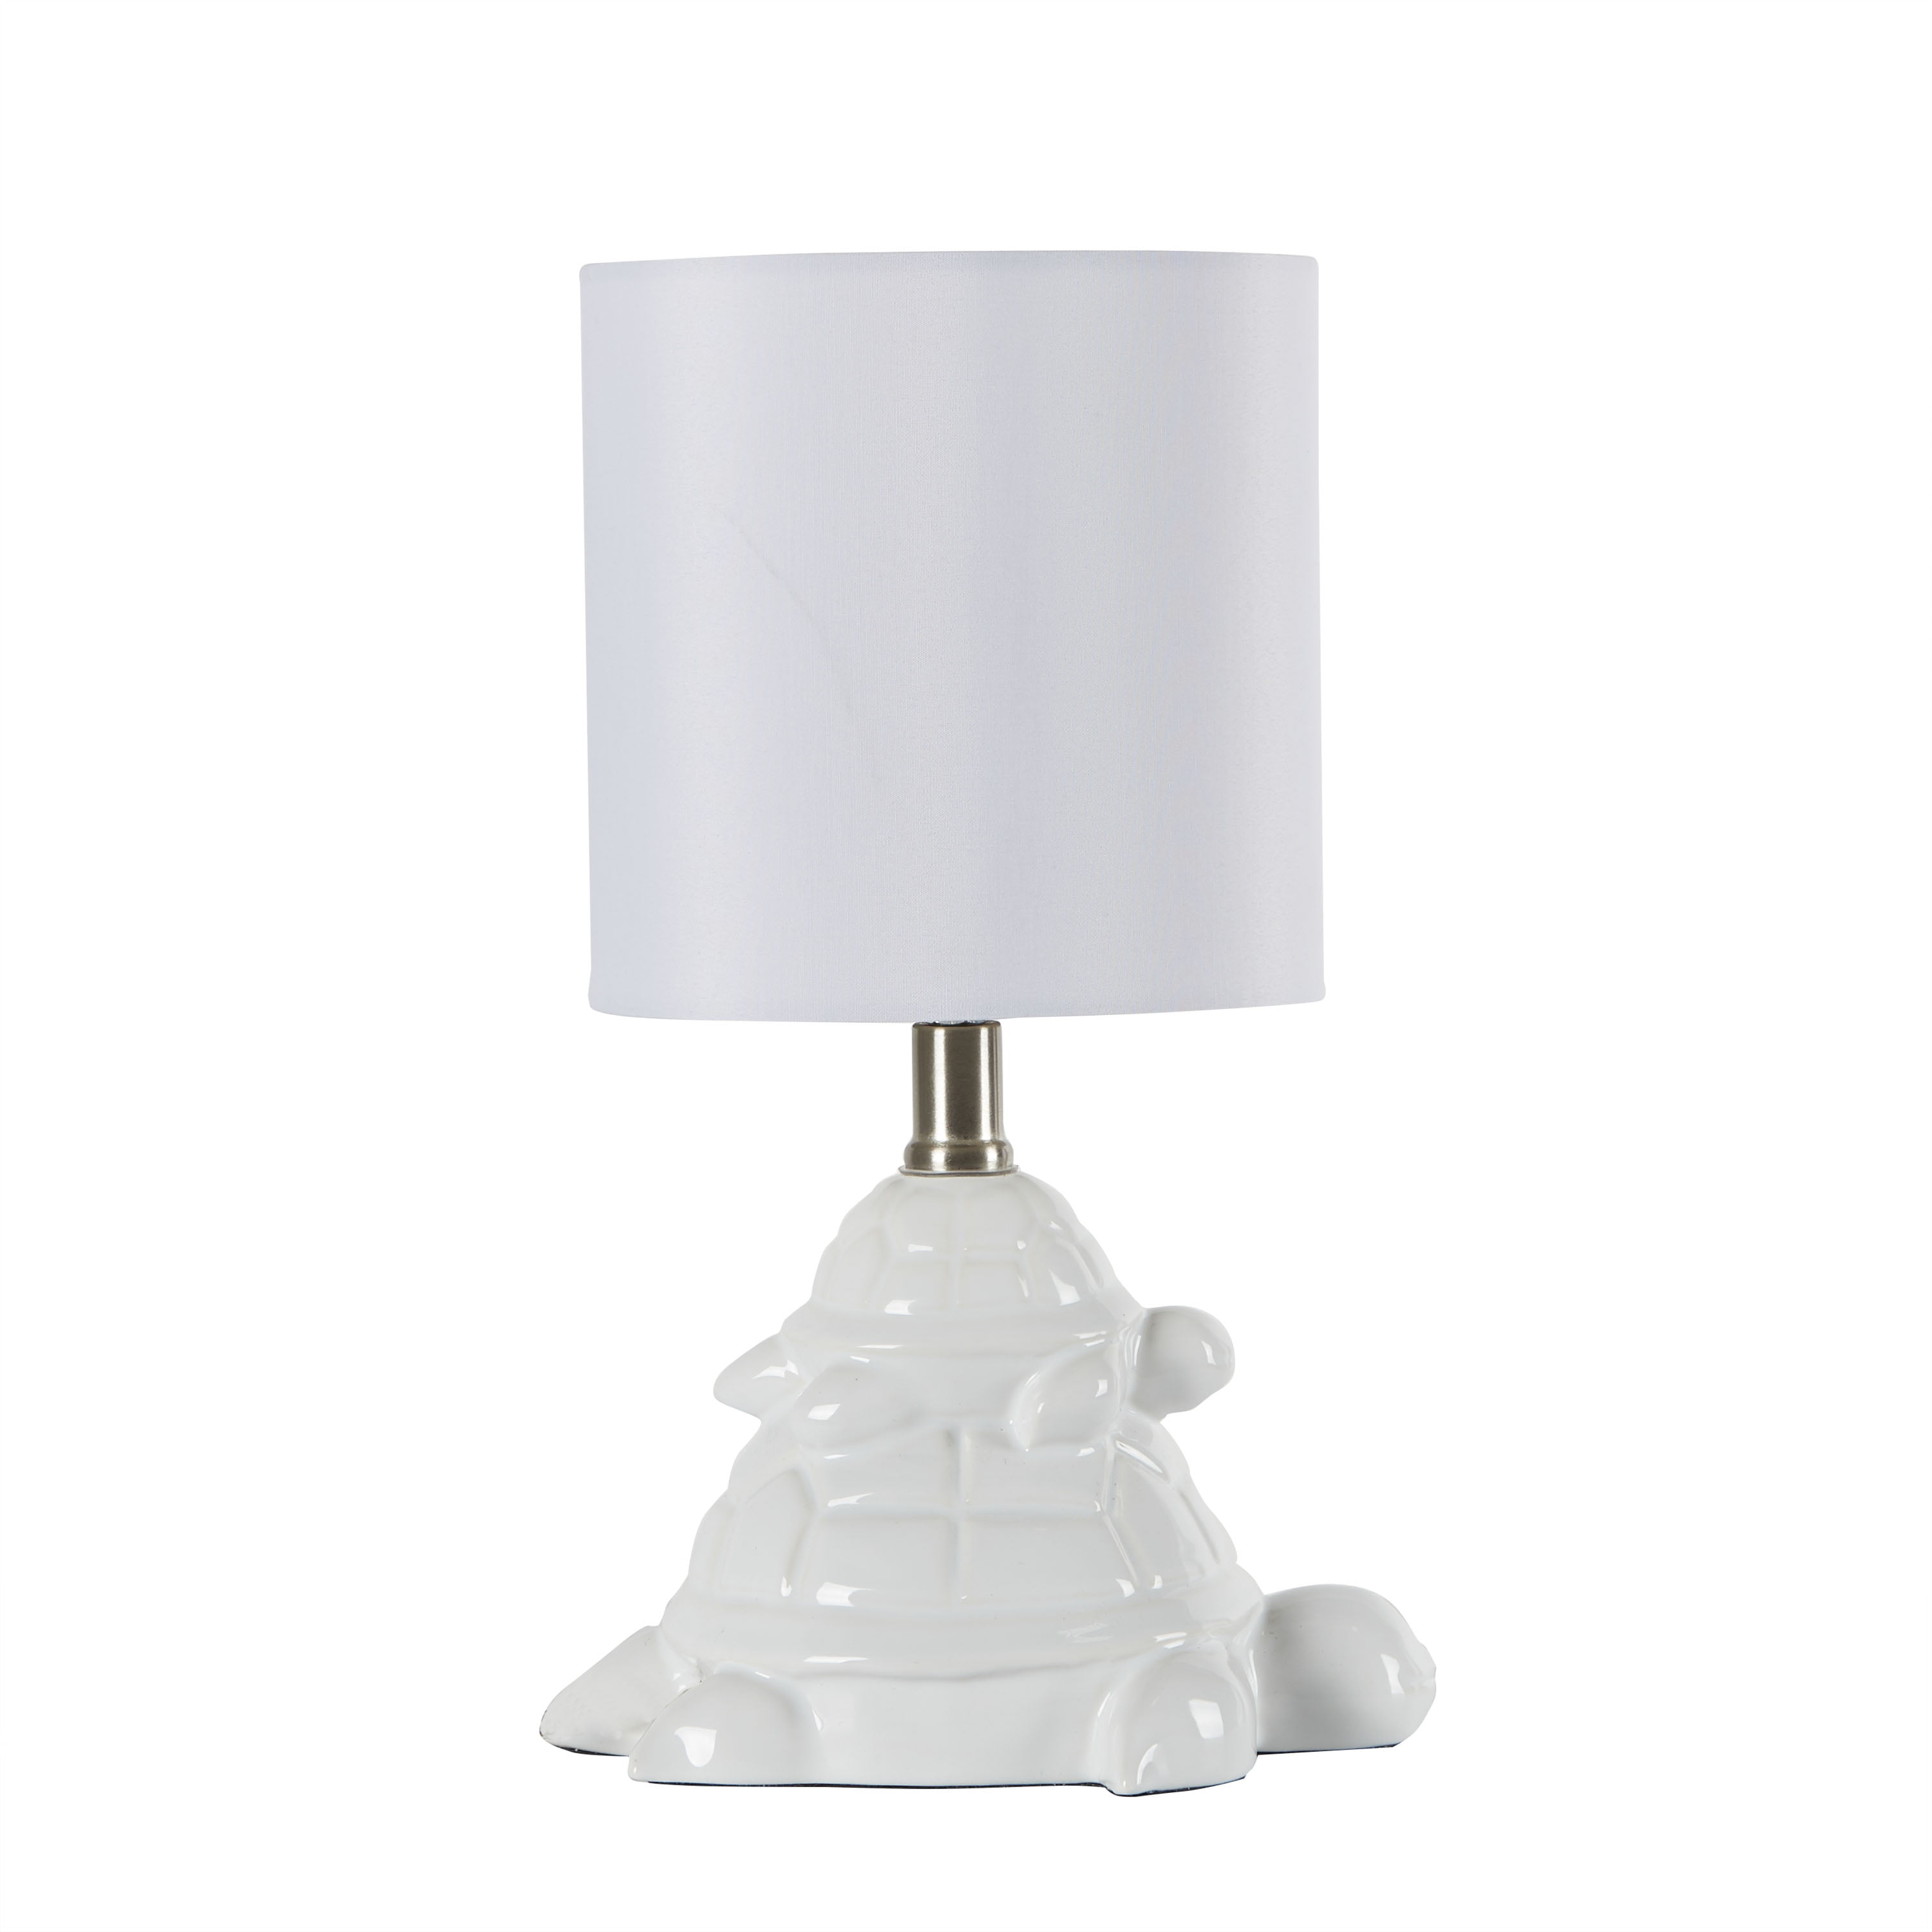 Your Zone White Ceramic Turtle Table Lamp with White Drum Shade - Walmart.com